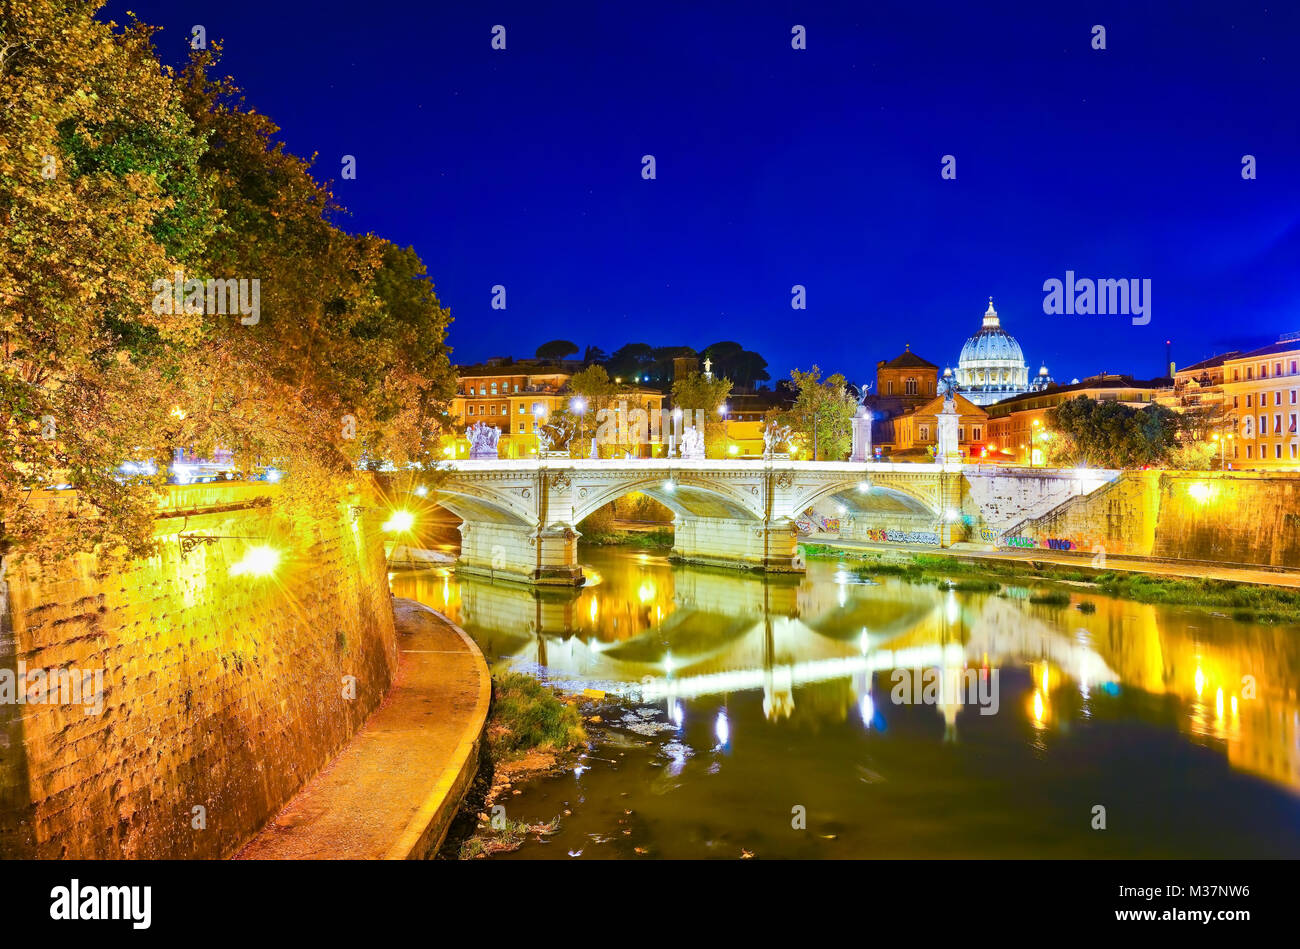 View of St. Peter's Basilica from Aelian Bridge in Rome at night. Stock Photo